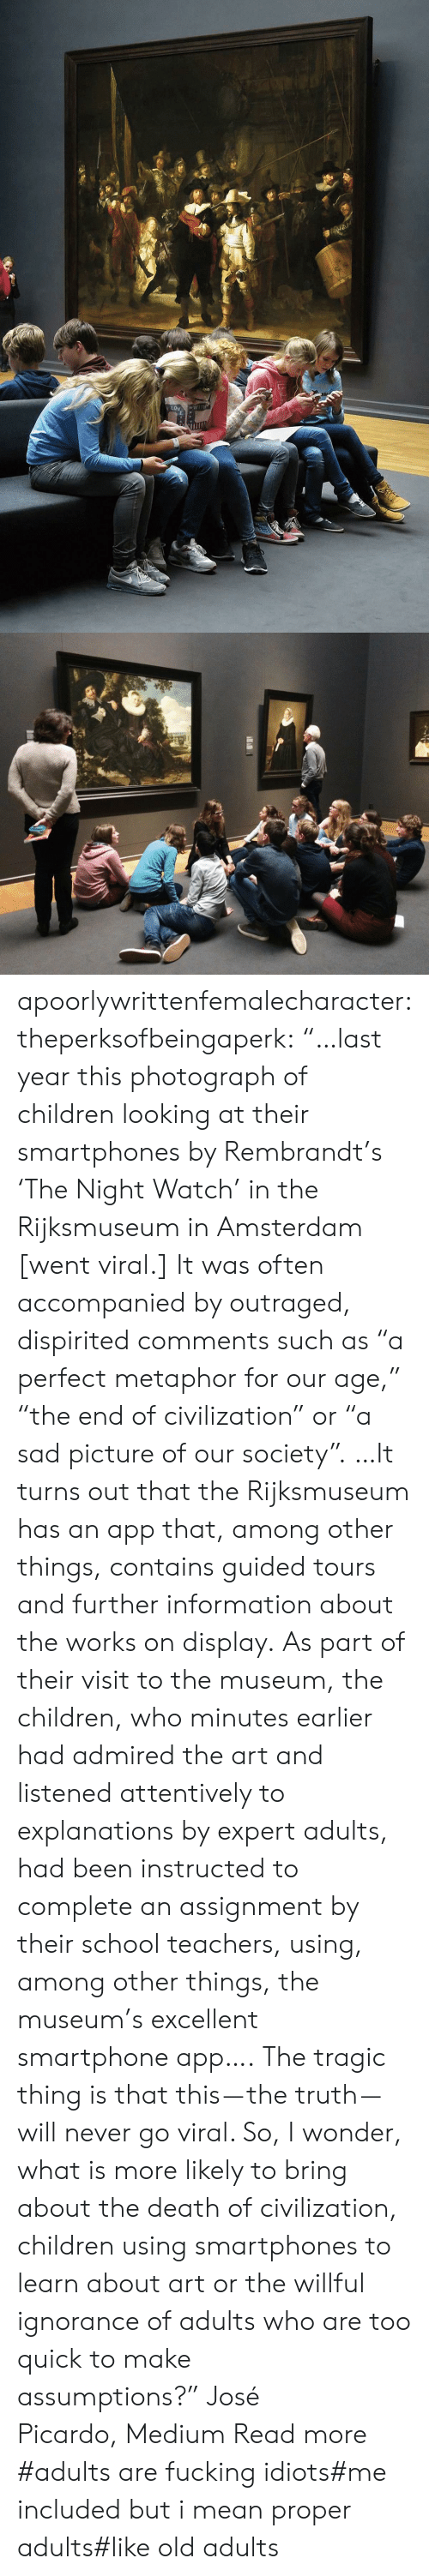 """Telegraph: apoorlywrittenfemalecharacter: theperksofbeingaperk:  """"…last year this photograph of children looking at their smartphones by Rembrandt's 'The Night Watch' in the Rijksmuseum in Amsterdam [went viral.] It was often accompanied by outraged, dispirited comments such as """"a perfect metaphor for our age,"""" """"the end of civilization"""" or """"a sad picture of our society"""". …It turns out that the Rijksmuseum has an app that, among other things, contains guided tours and further information about the works on display. As part of their visit to the museum, the children, who minutes earlier had admired the art and listened attentively to explanations by expert adults, had been instructed to complete an assignment by their school teachers, using, among other things, the museum's excellent smartphone app….   The tragic thing is that this—the truth—will never go viral. So, I wonder, what is more likely to bring about the death of civilization, children using smartphones to learn about art or the willful ignorance of adults who are too quick to make assumptions?""""José Picardo,Medium Read more    #adults are fucking idiots#me included but i mean proper adults#like old adults"""